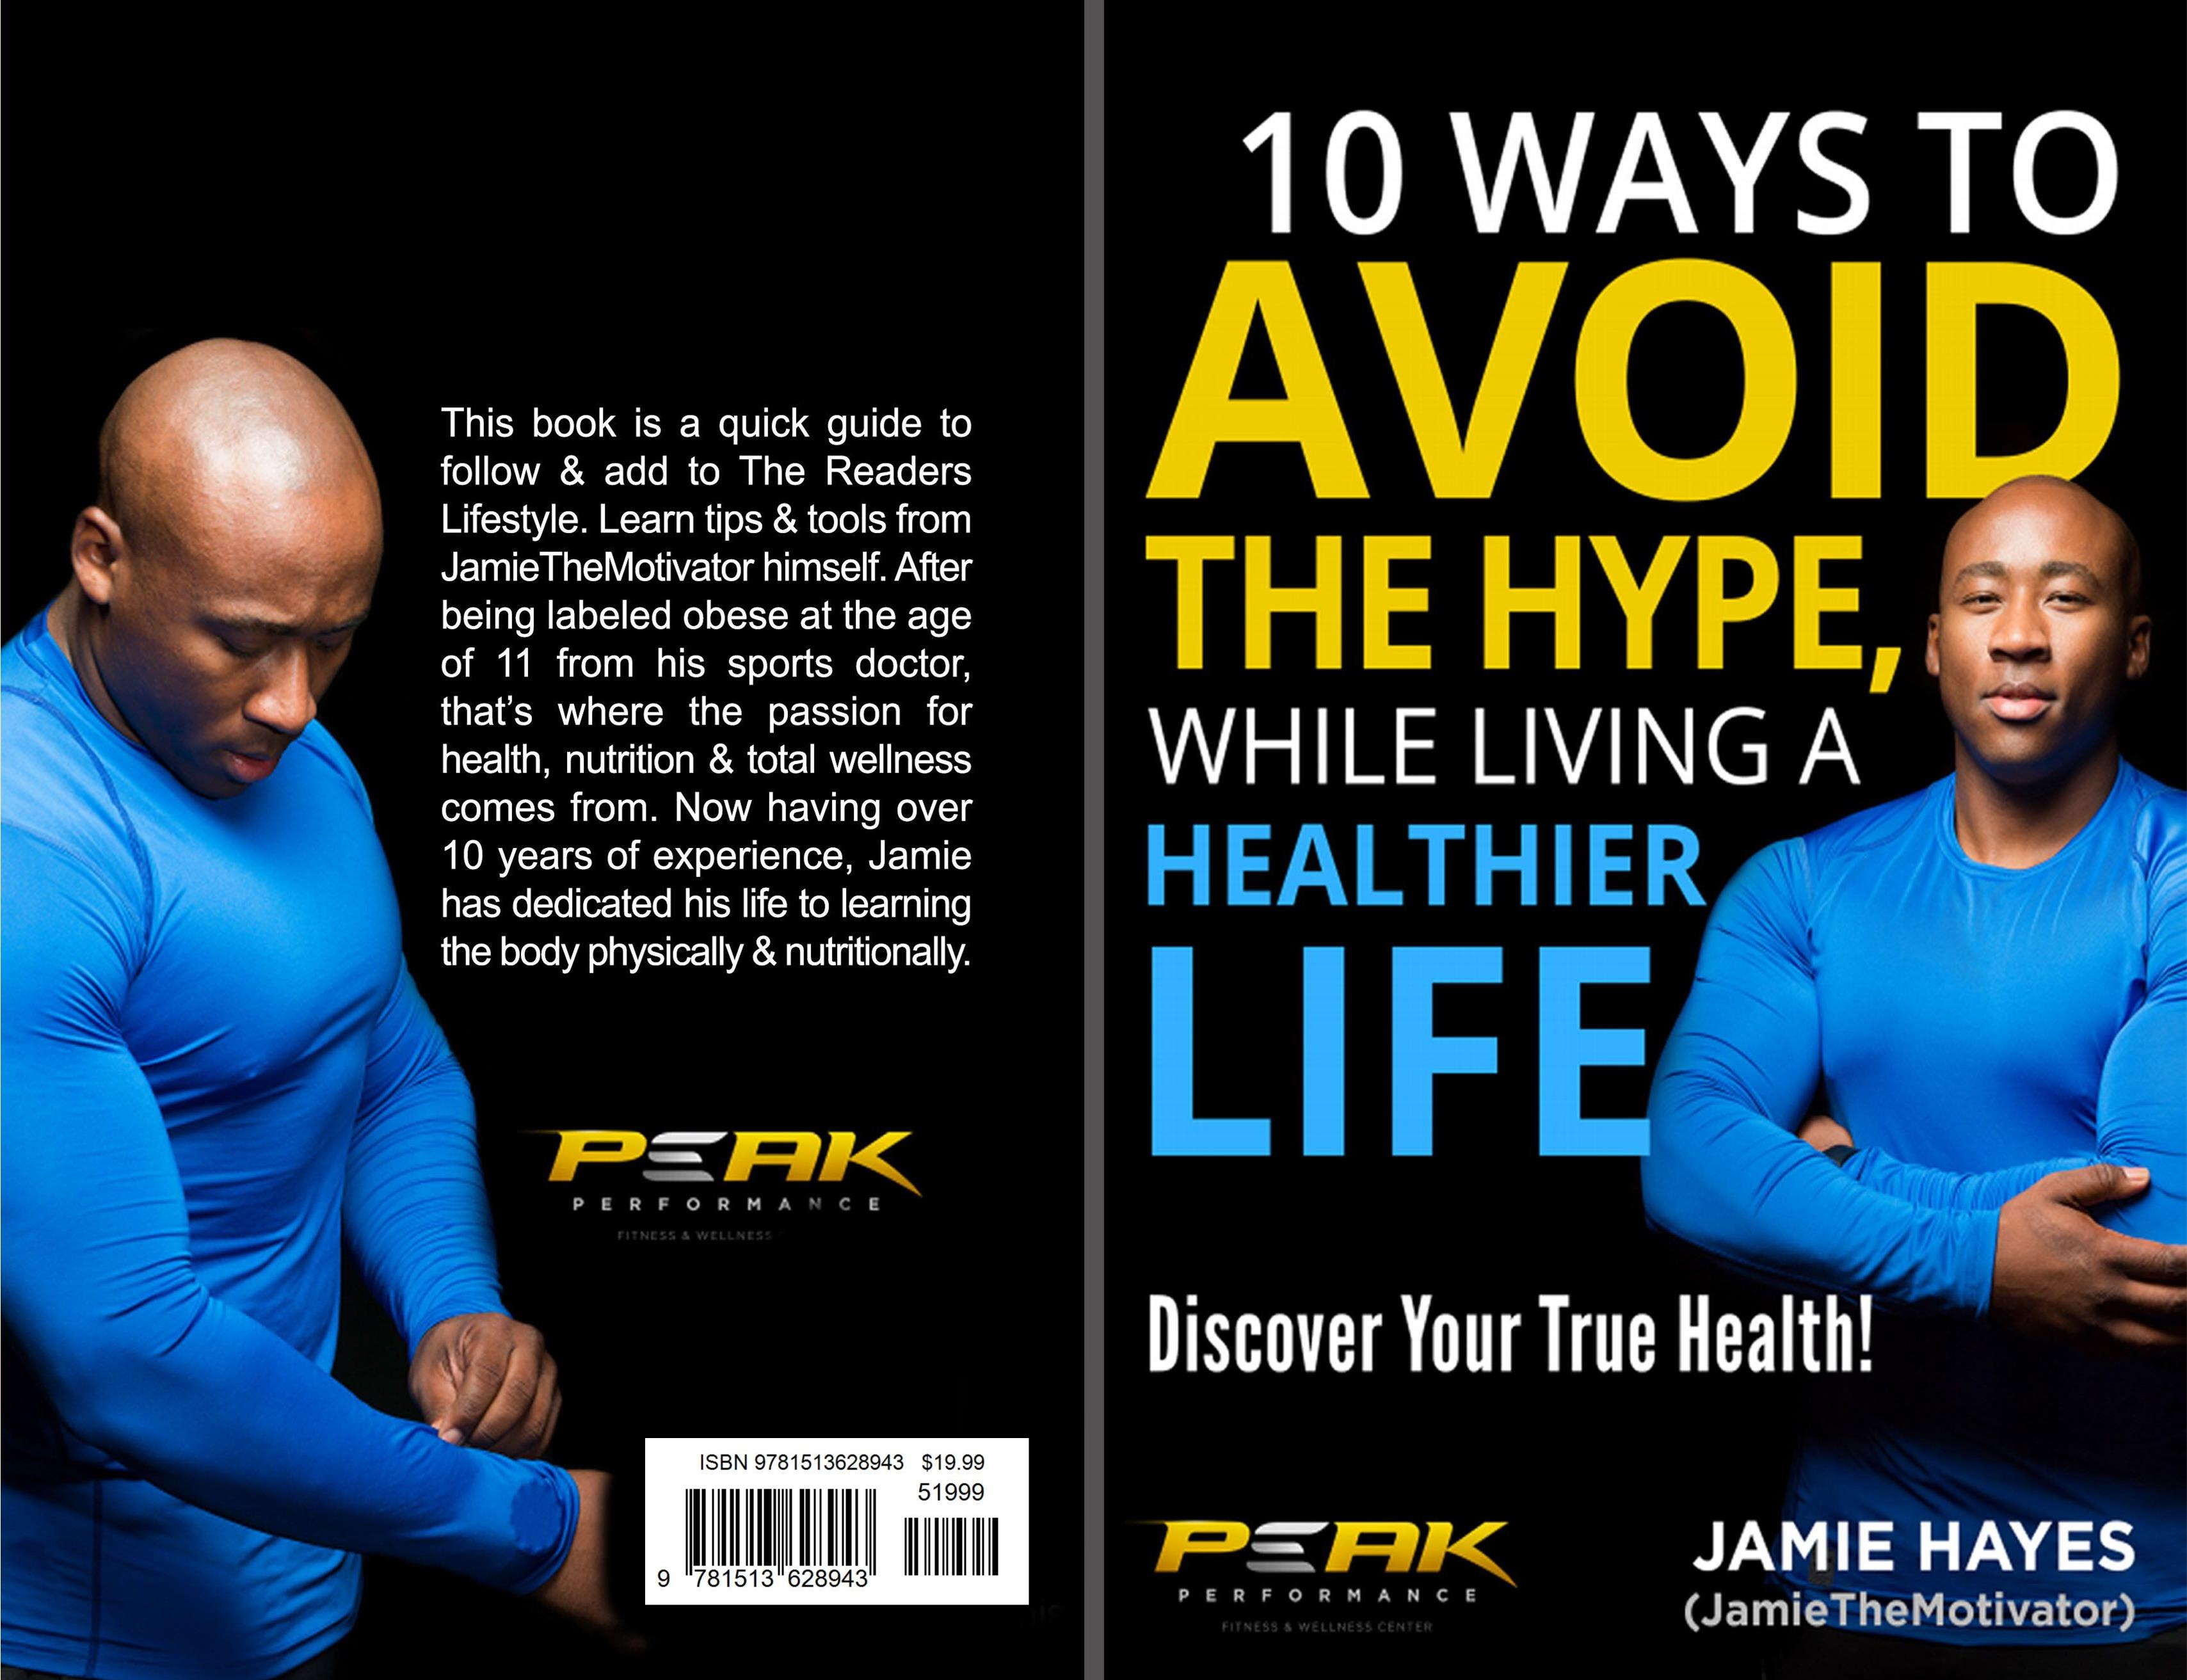 HOW TO AVOID THE HYPE, WHILE LIVING A HEALTHIER LIFE 10 Ways to a Healthier Life cover image